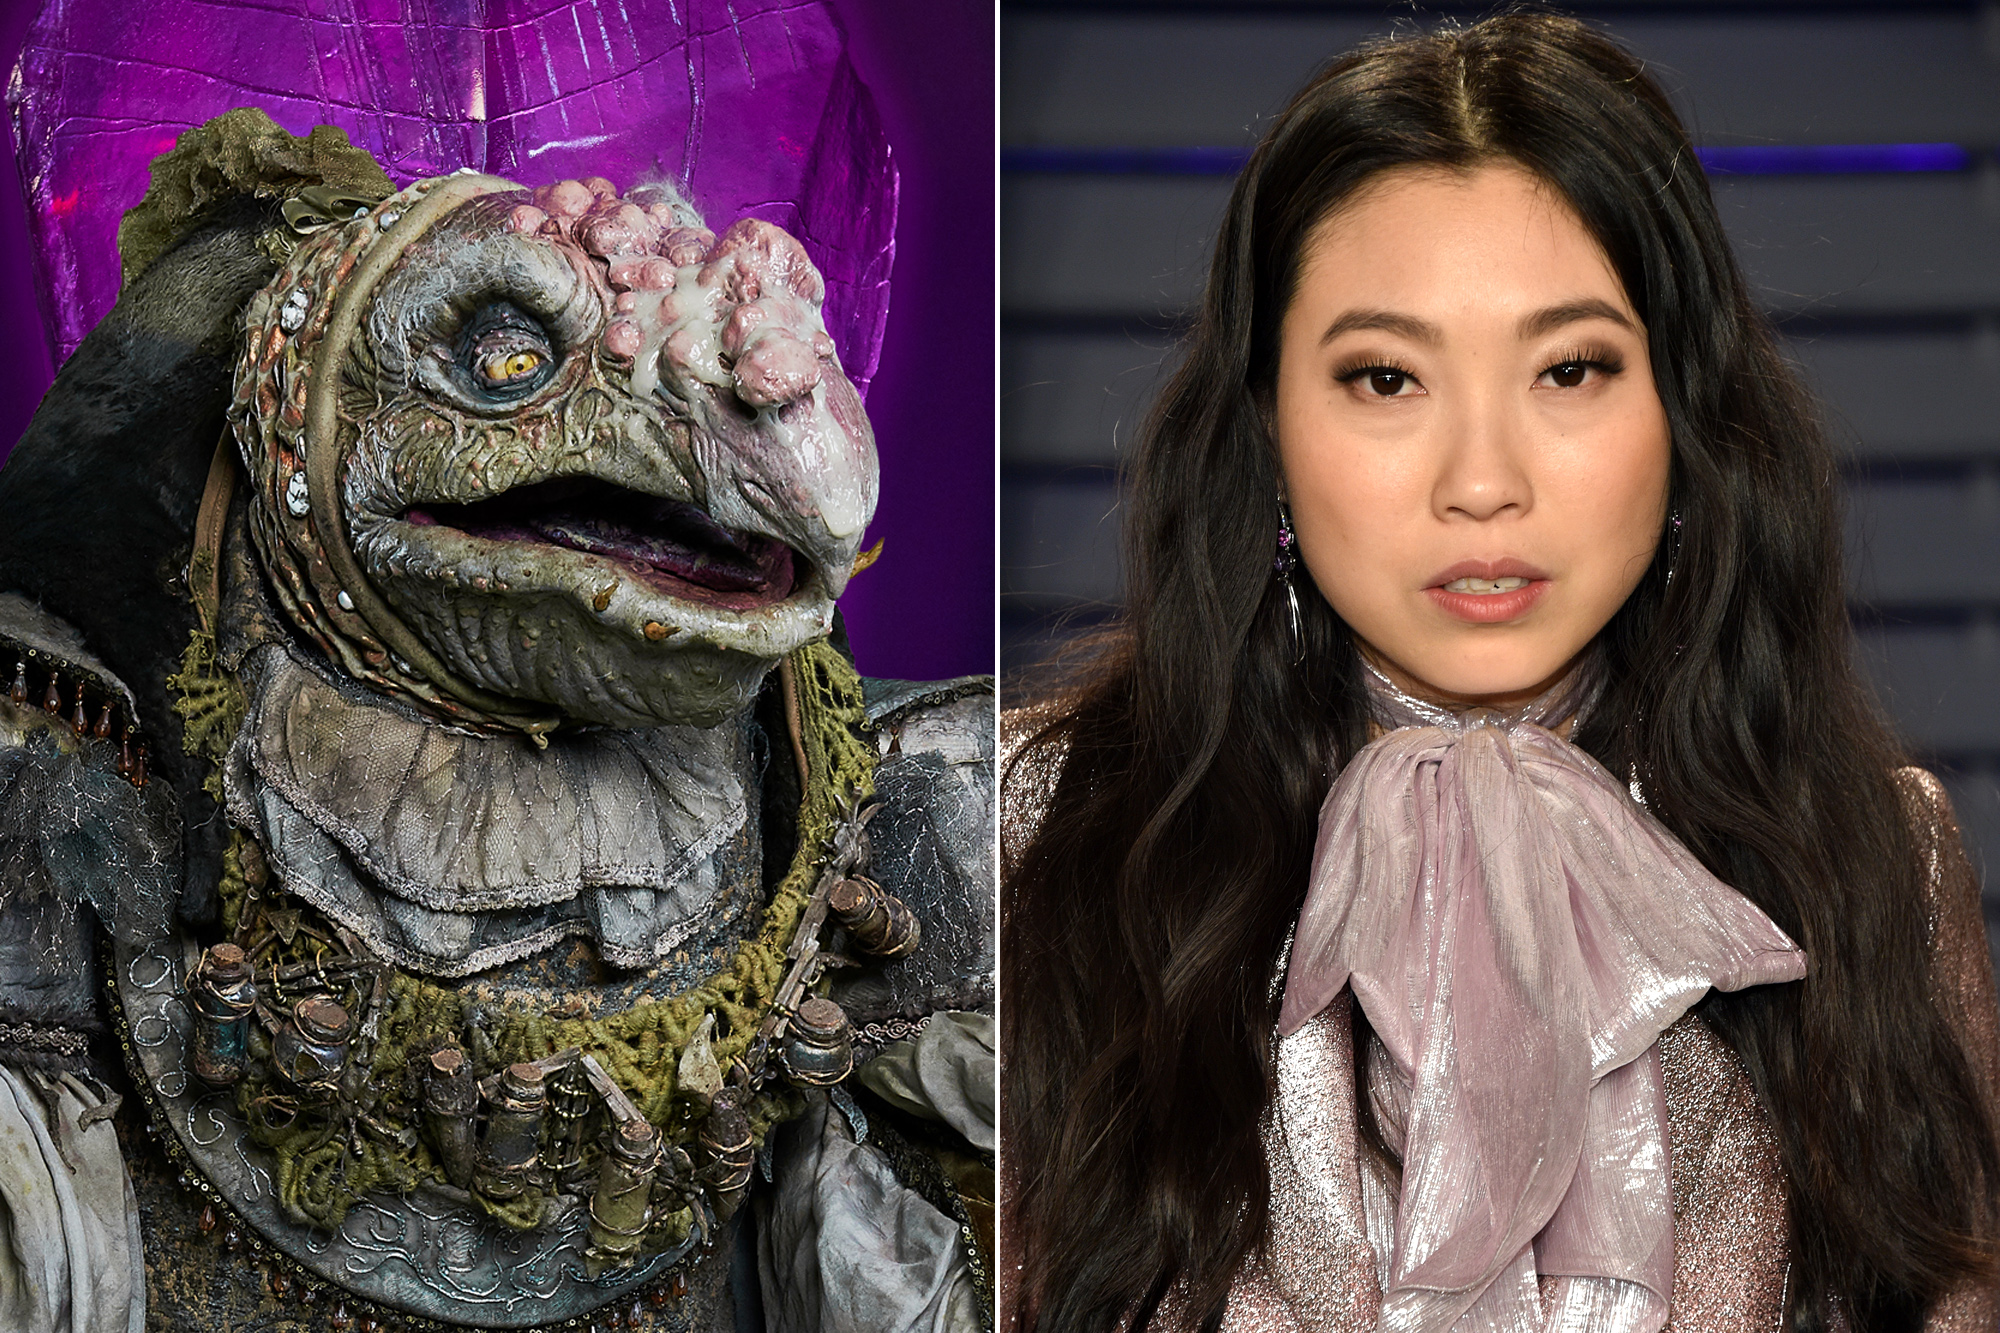 Awkwafina as The Collector